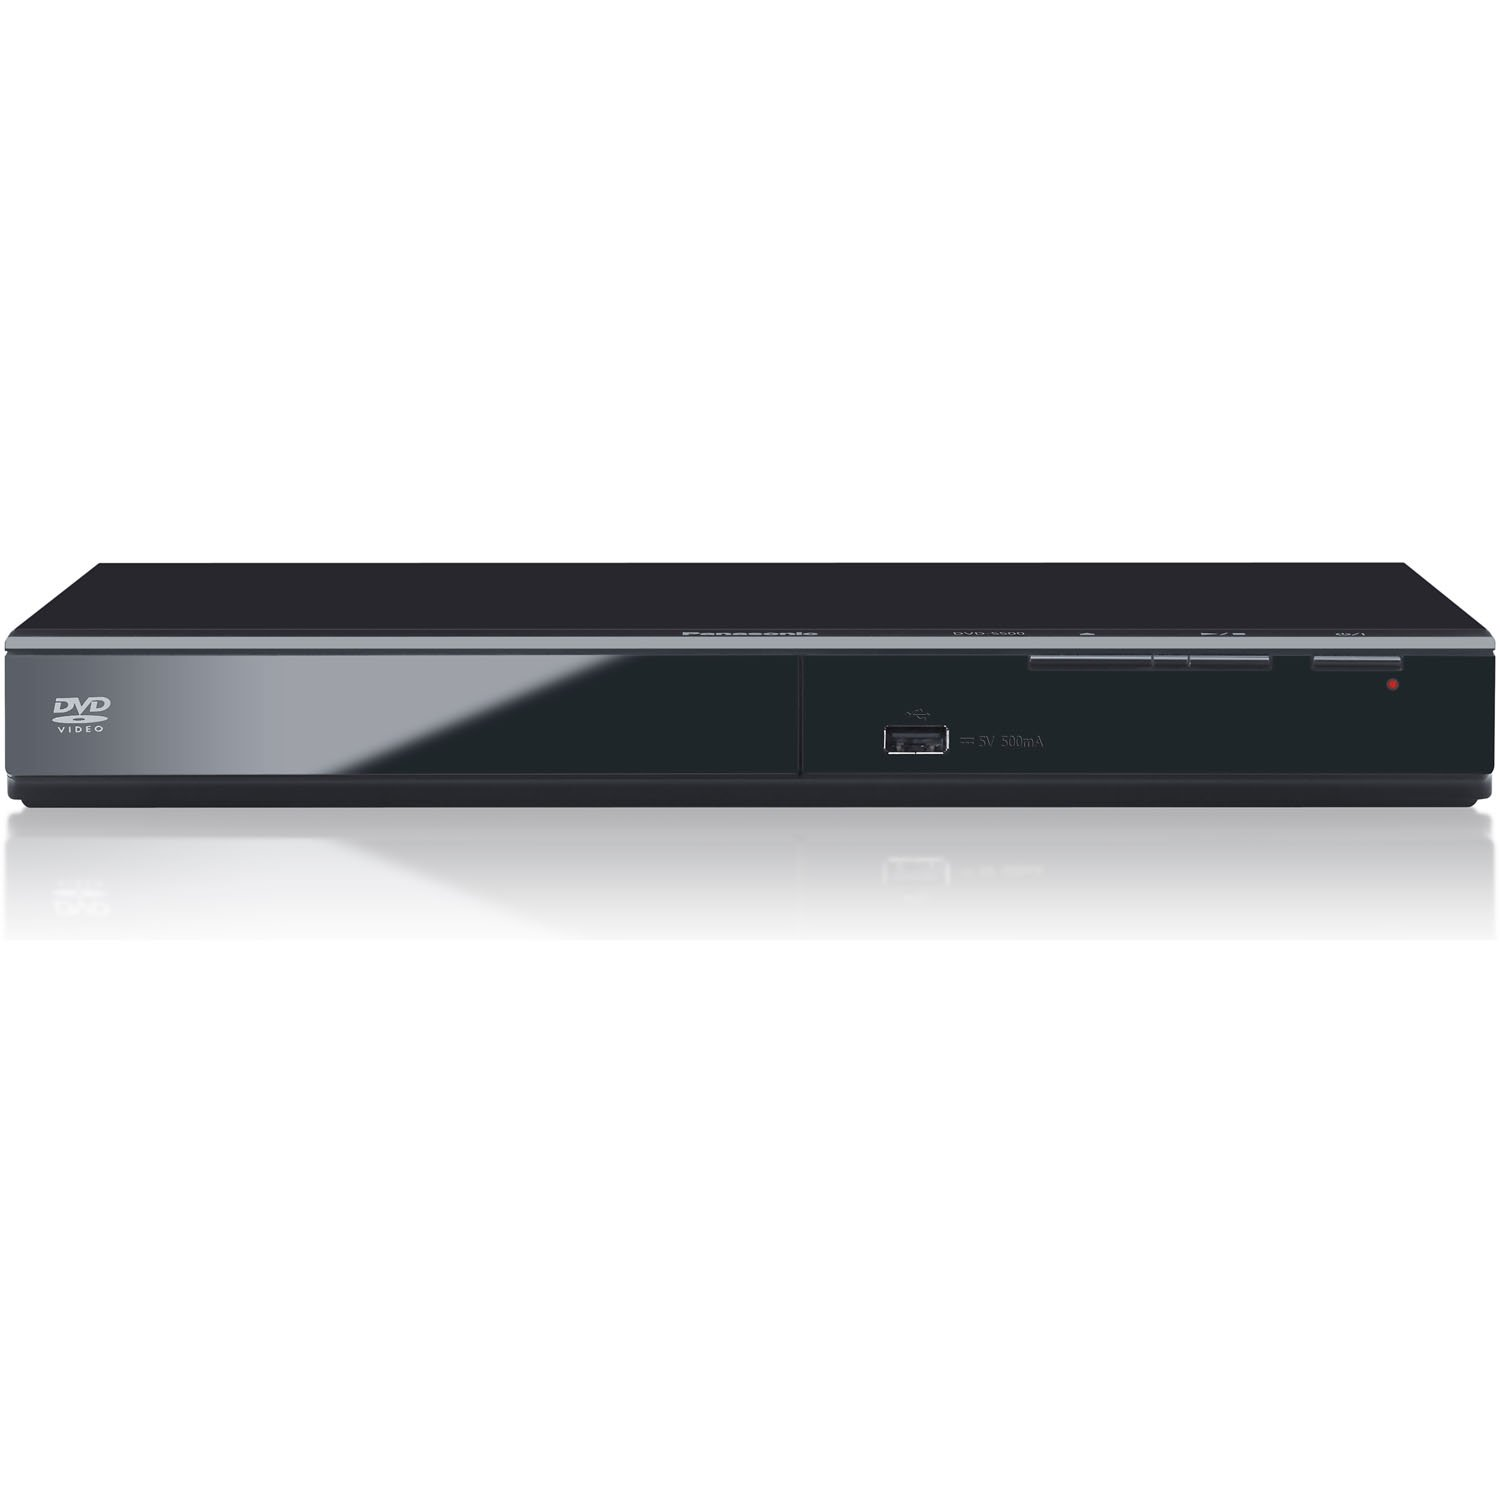 Panasonic Progressive Scan DVD Player with CD Ripping and Tough Dust Resistant Design, Features all NEW Power Resume for Power Outages, and Video & Audio D/A Converters for DVD/CD Playback, Additional Feature Includes Enhanced File Format Compatibility fo